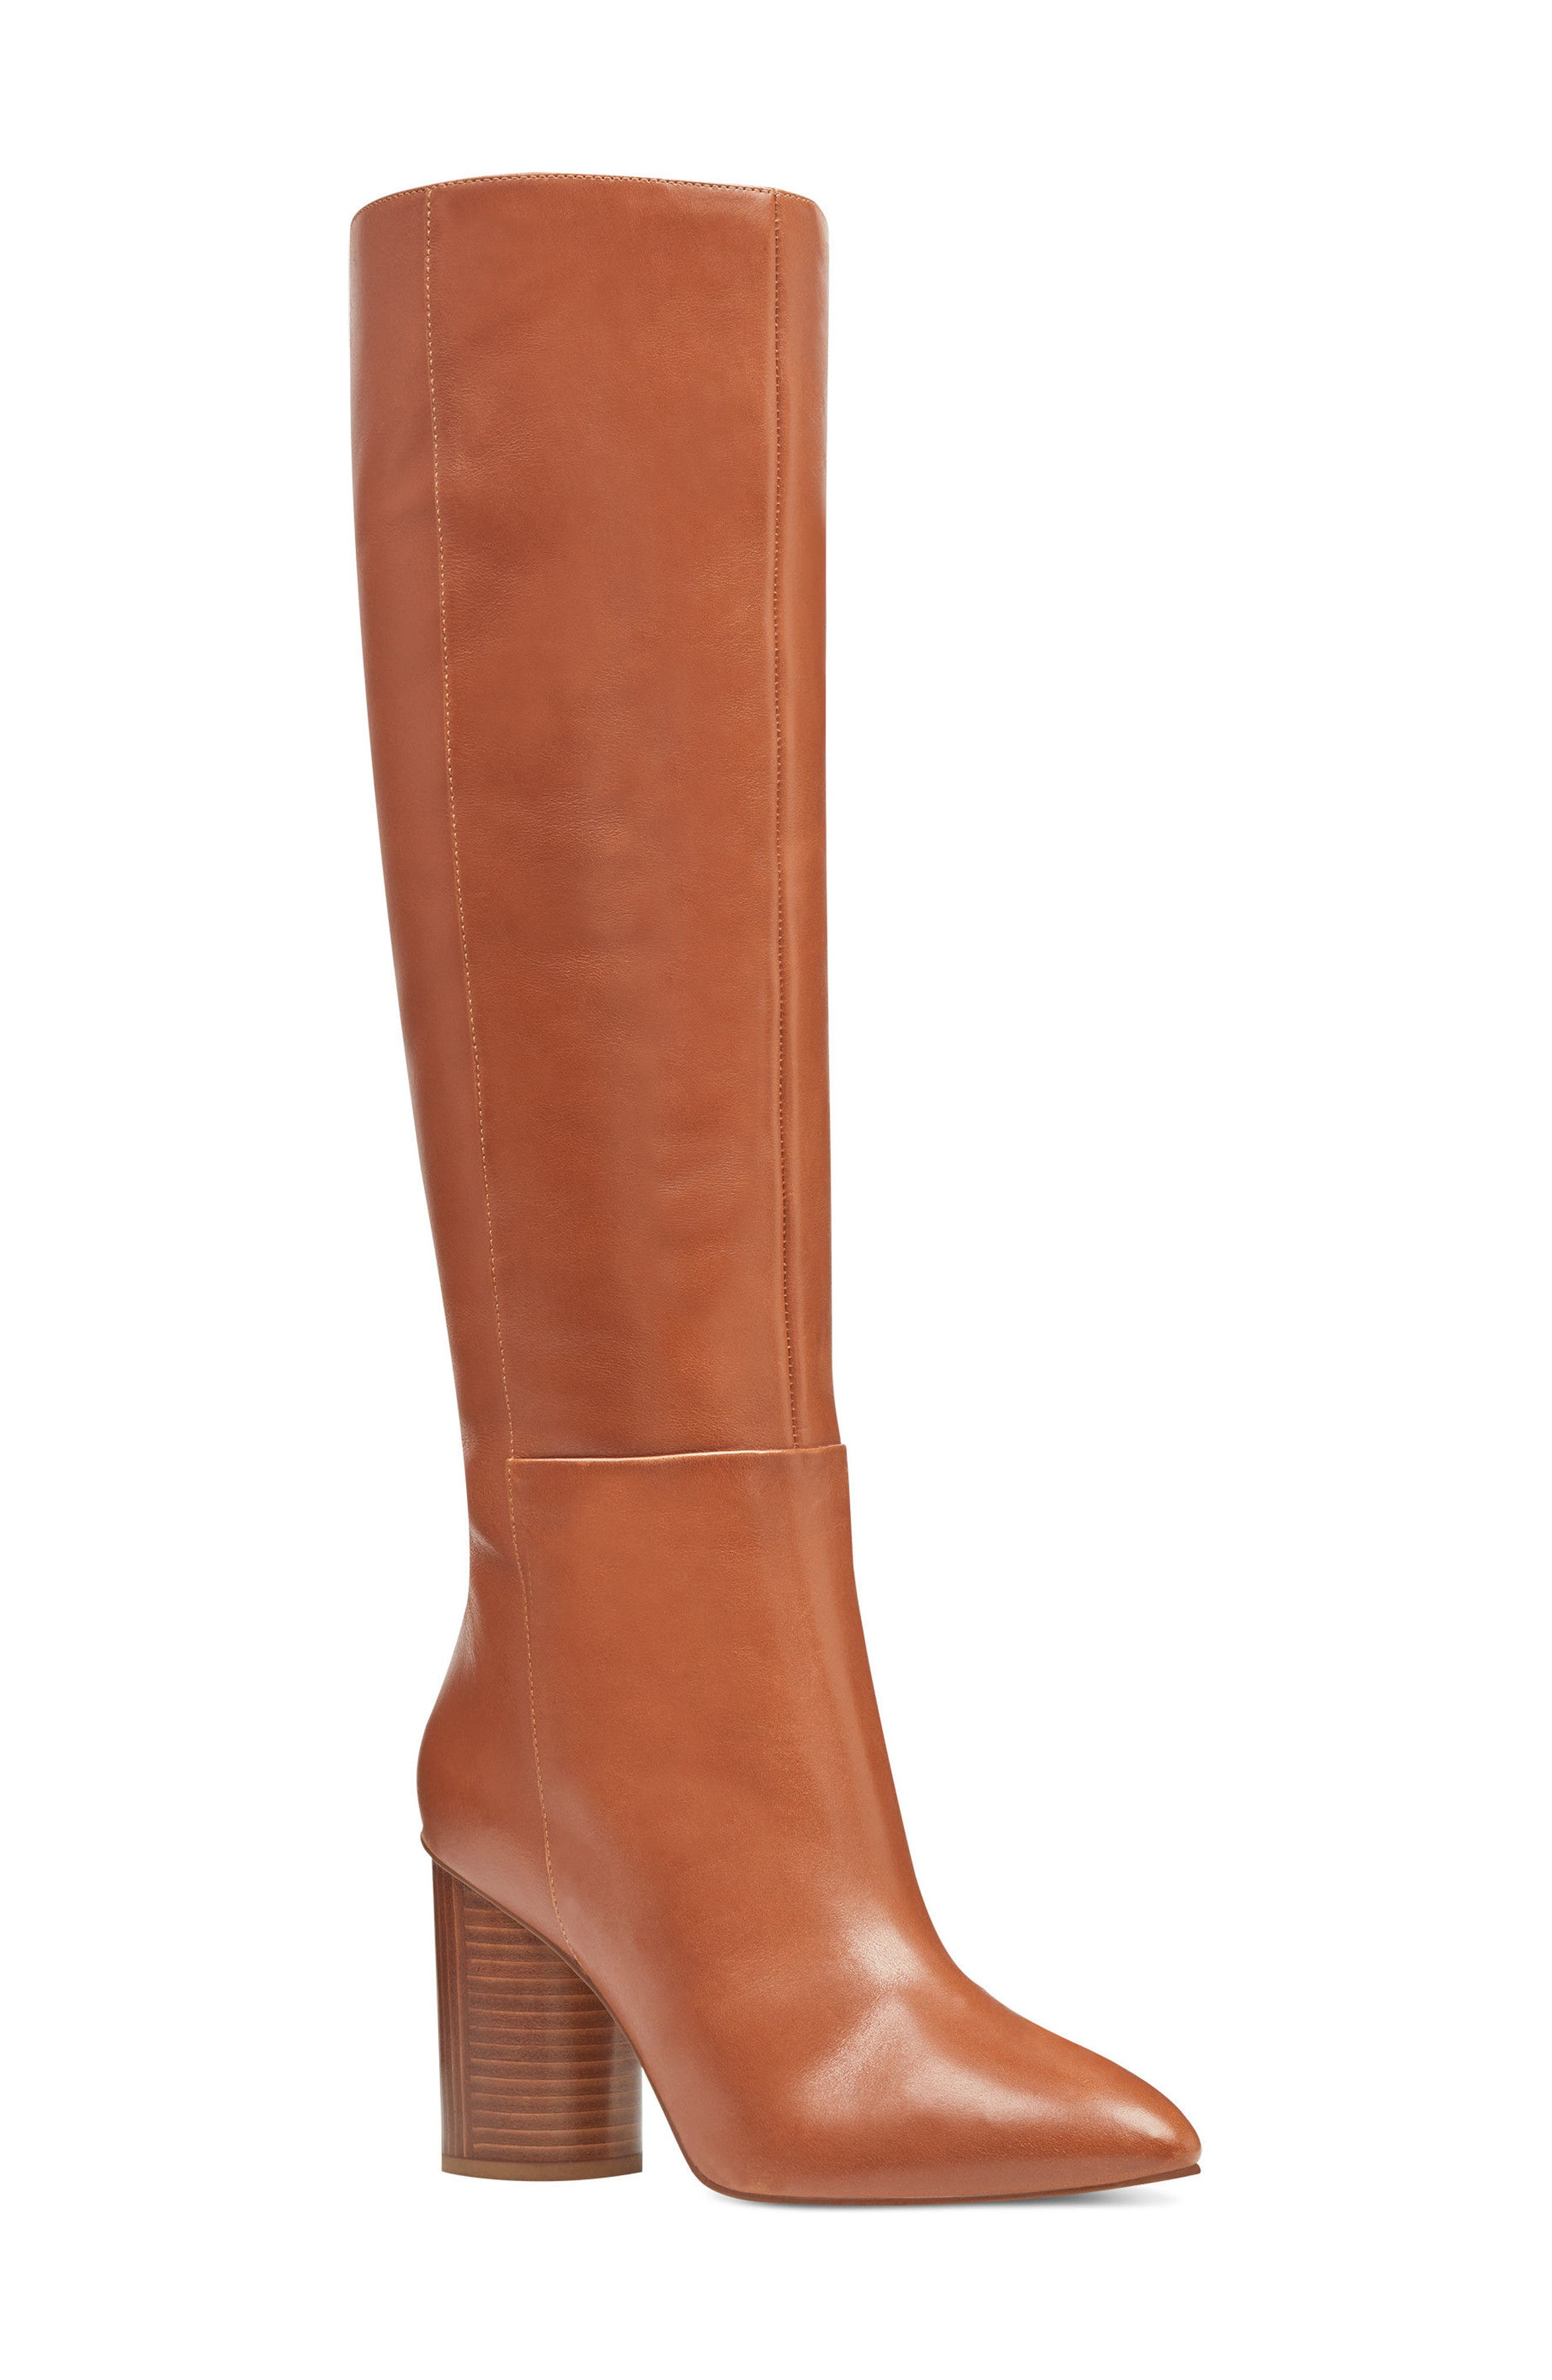 Christie Knee High Boot,                             Main thumbnail 2, color,